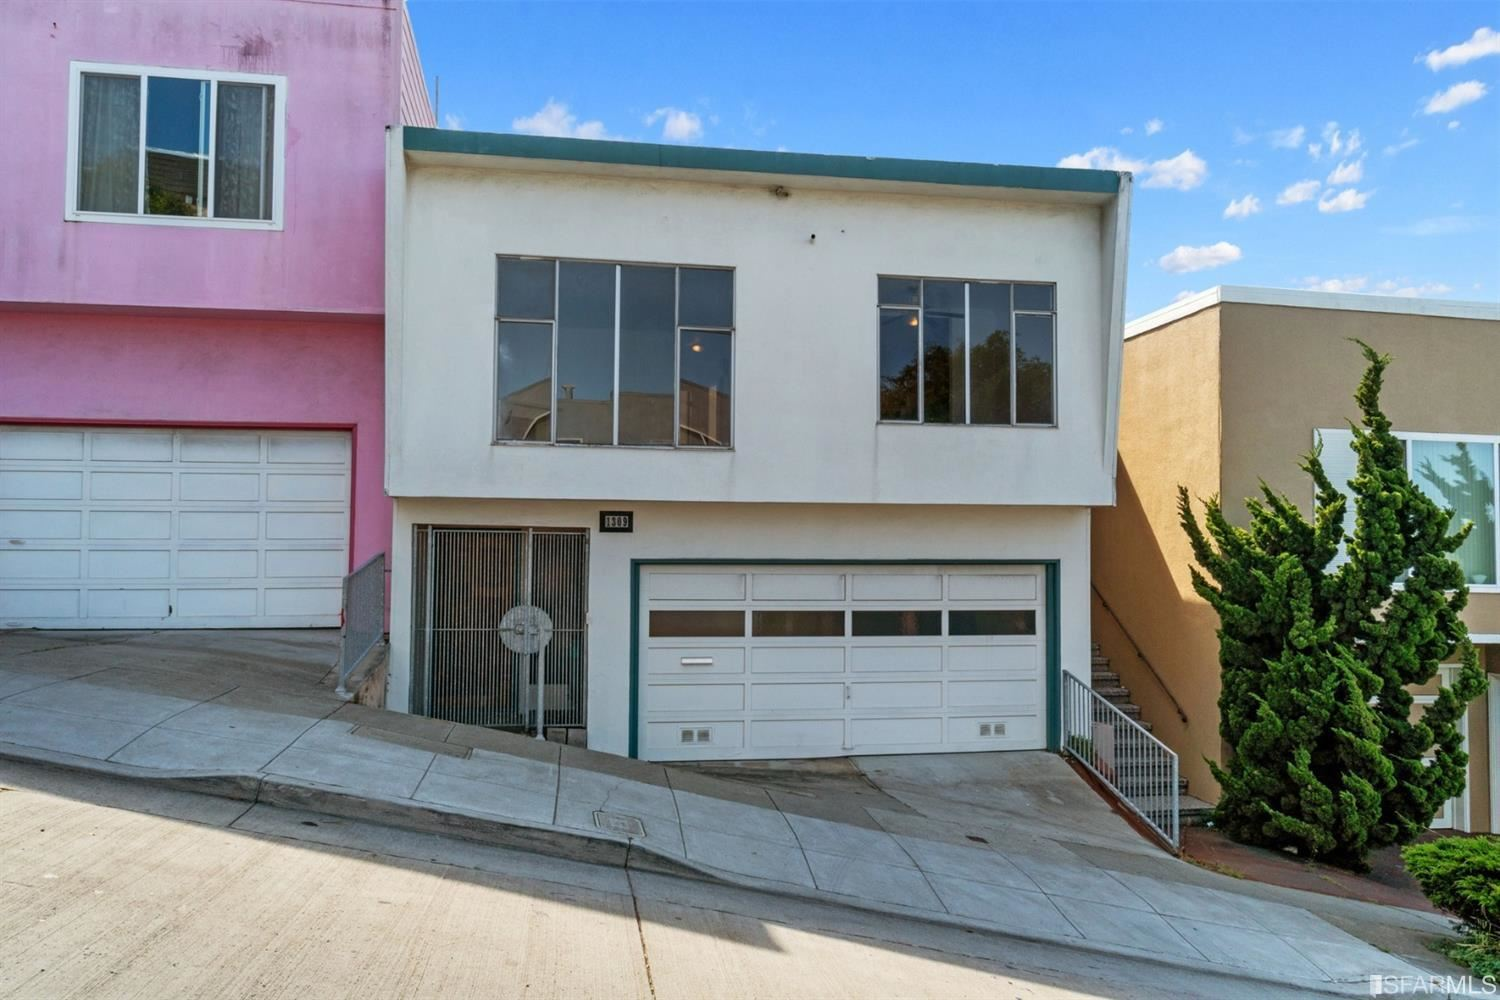 1309 Keith Street, San Francisco, CA 94124 - #: 498040